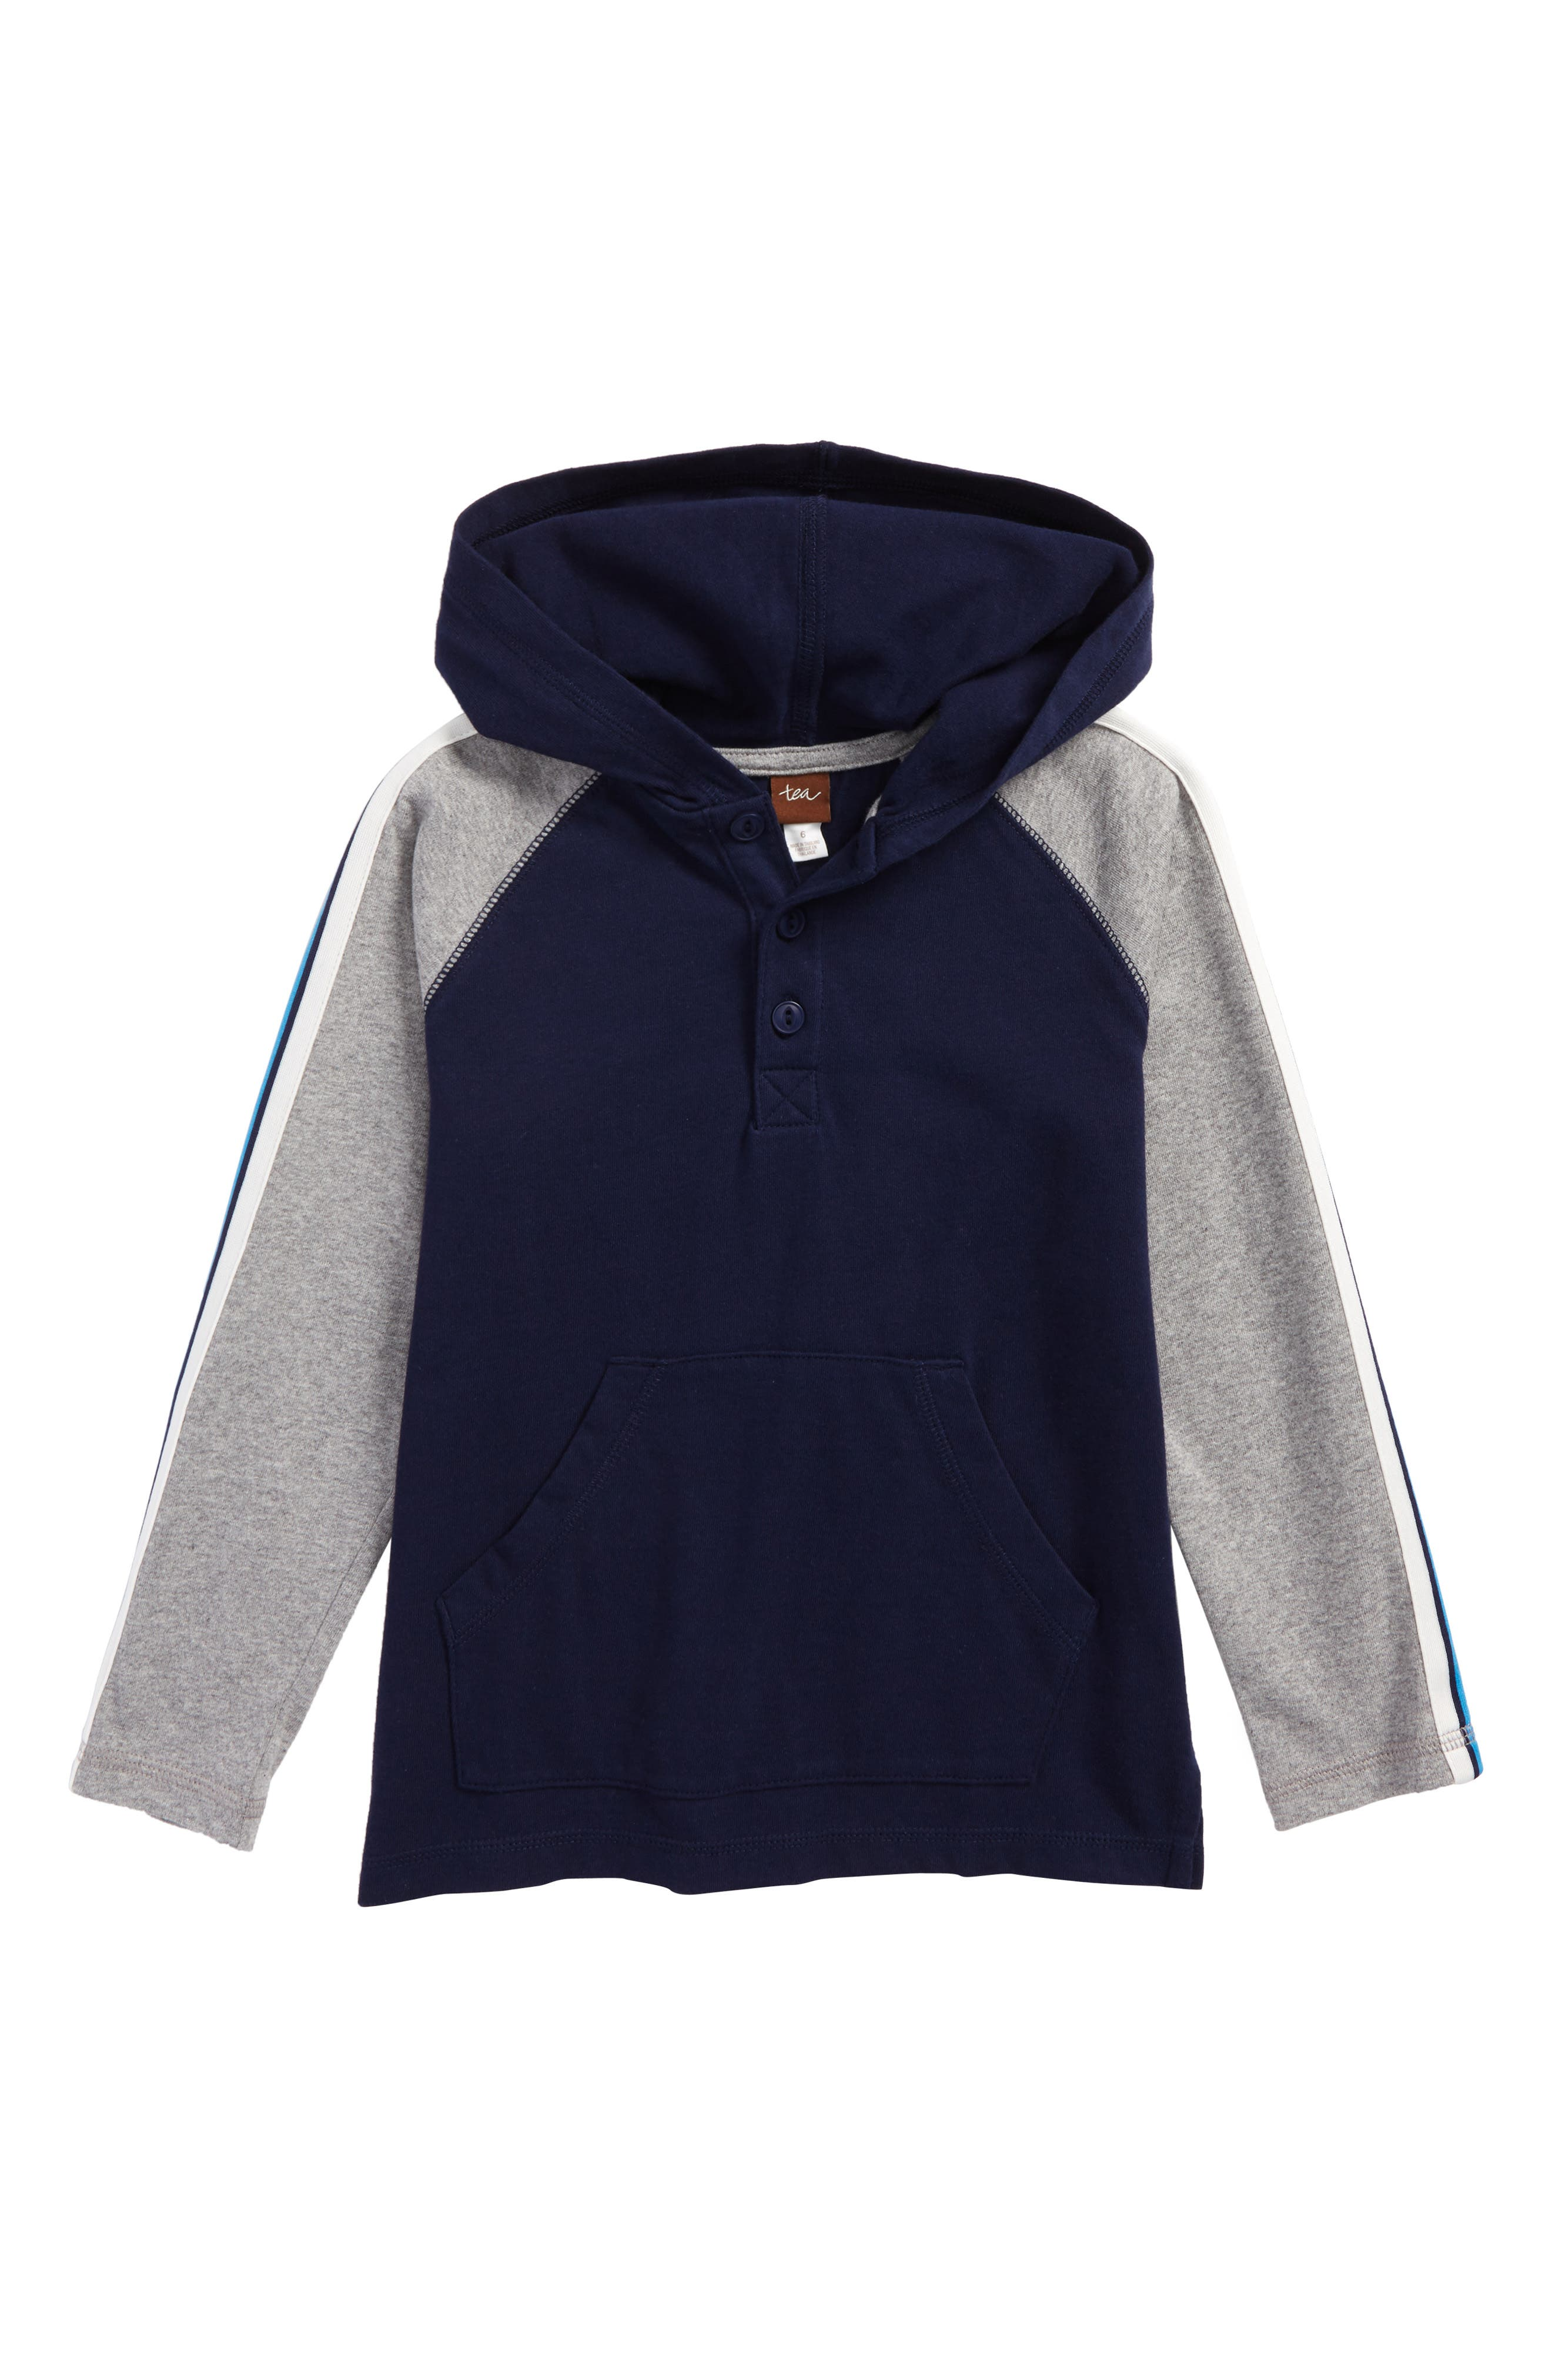 Alternate Image 1 Selected - Tea Collection Ewan Henley Hoodie (Toddler Boys & Little Boys)